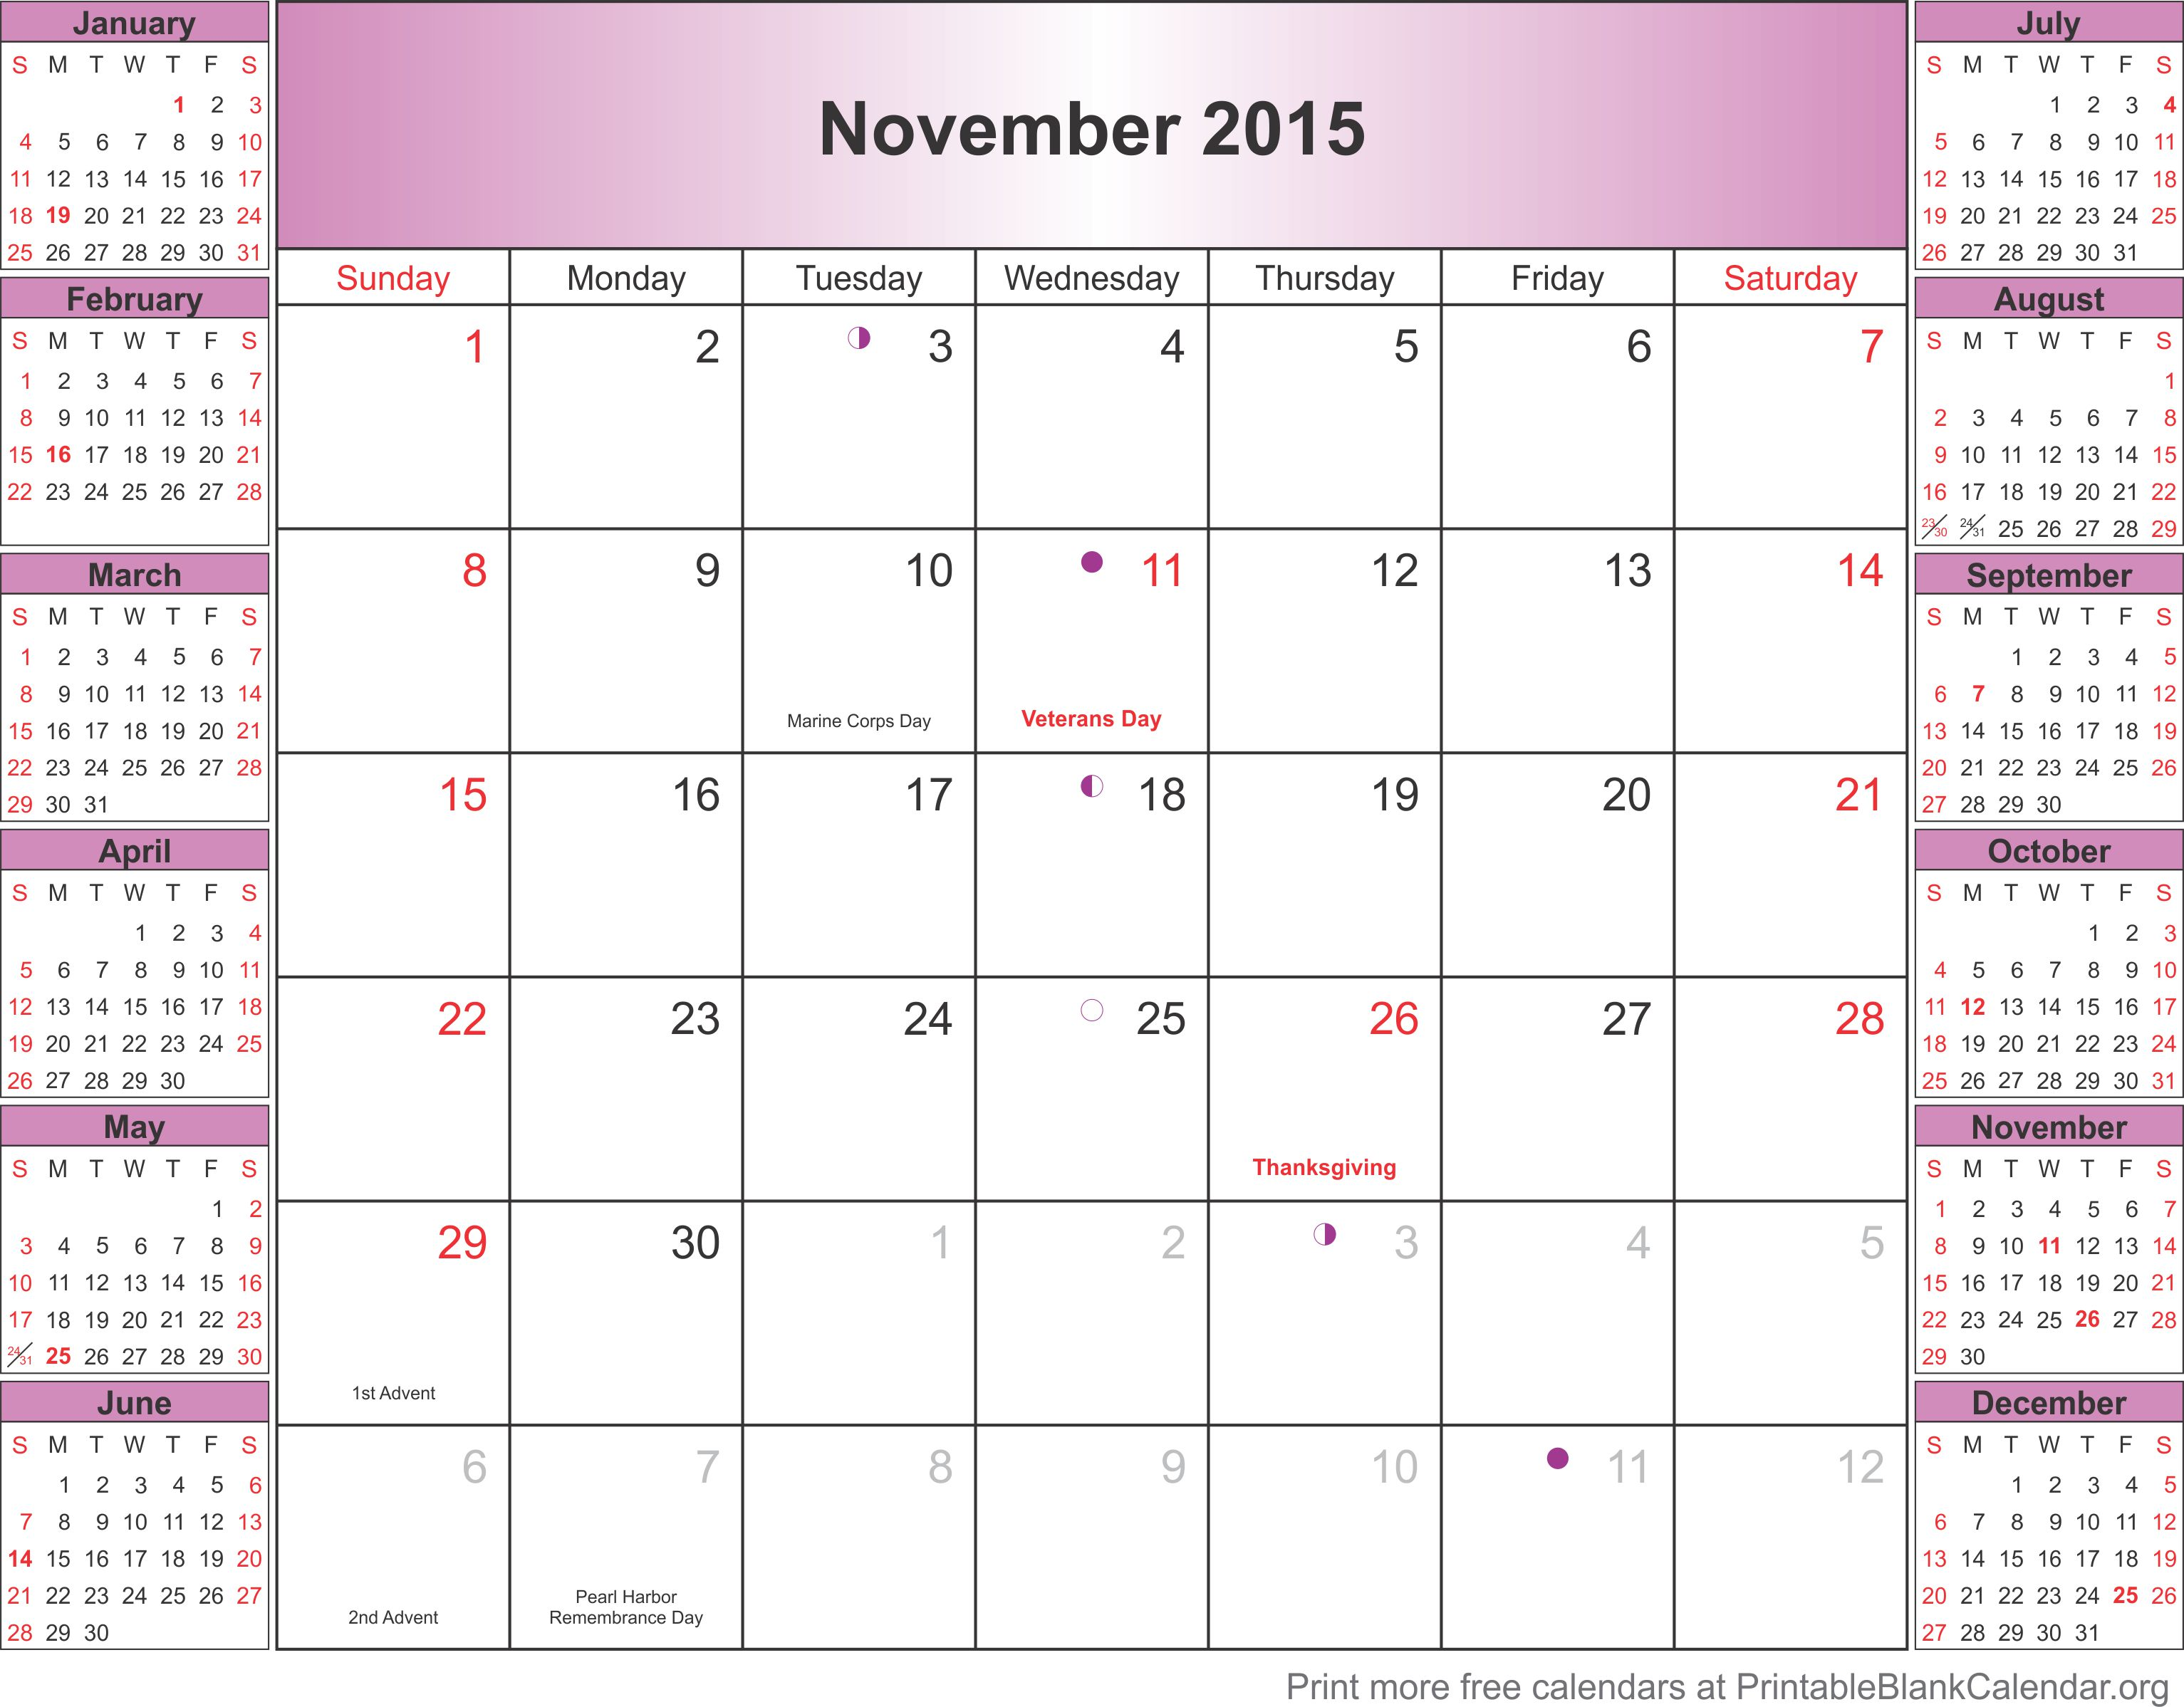 November 2015 calendar with holidays - Printable Blank Calendar.org